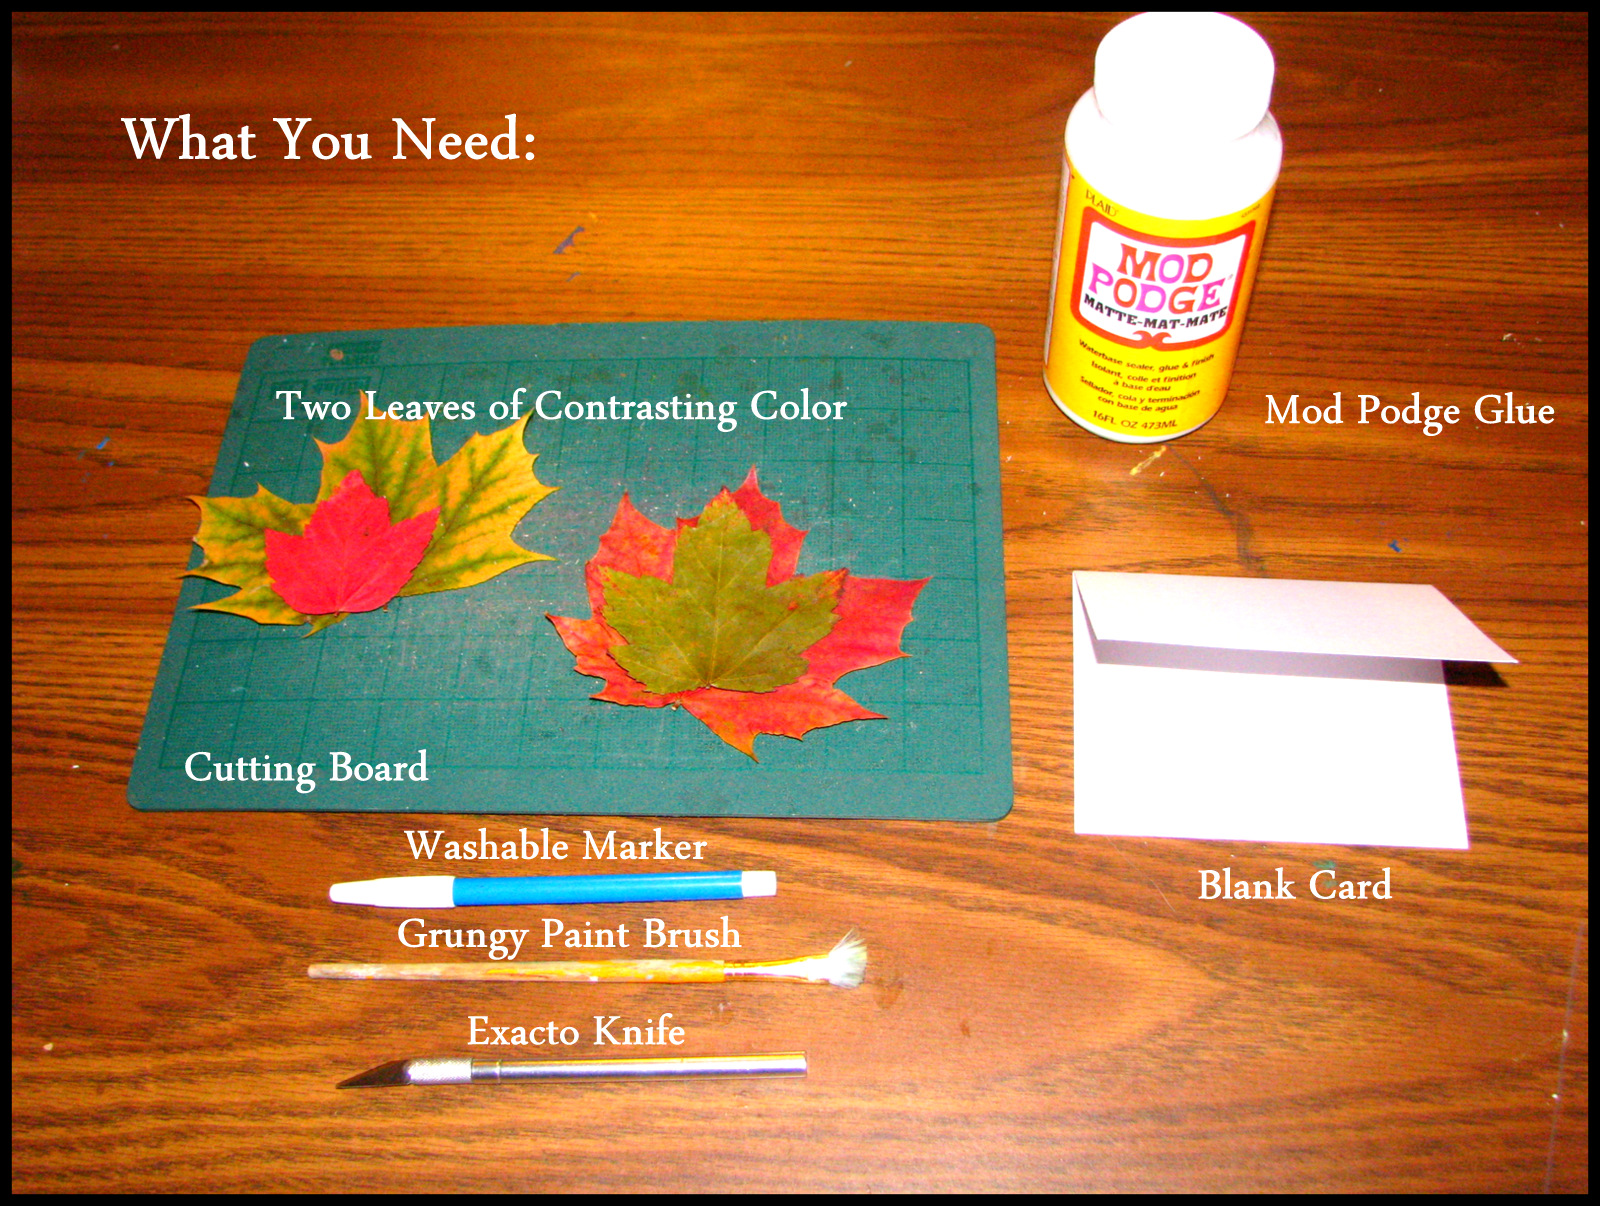 How to make leaf greeting cards fauna finds flora tis the season to send out greetings here is a simple way to make a decorative greeting card using natures decorations autumn leaves kristyandbryce Image collections